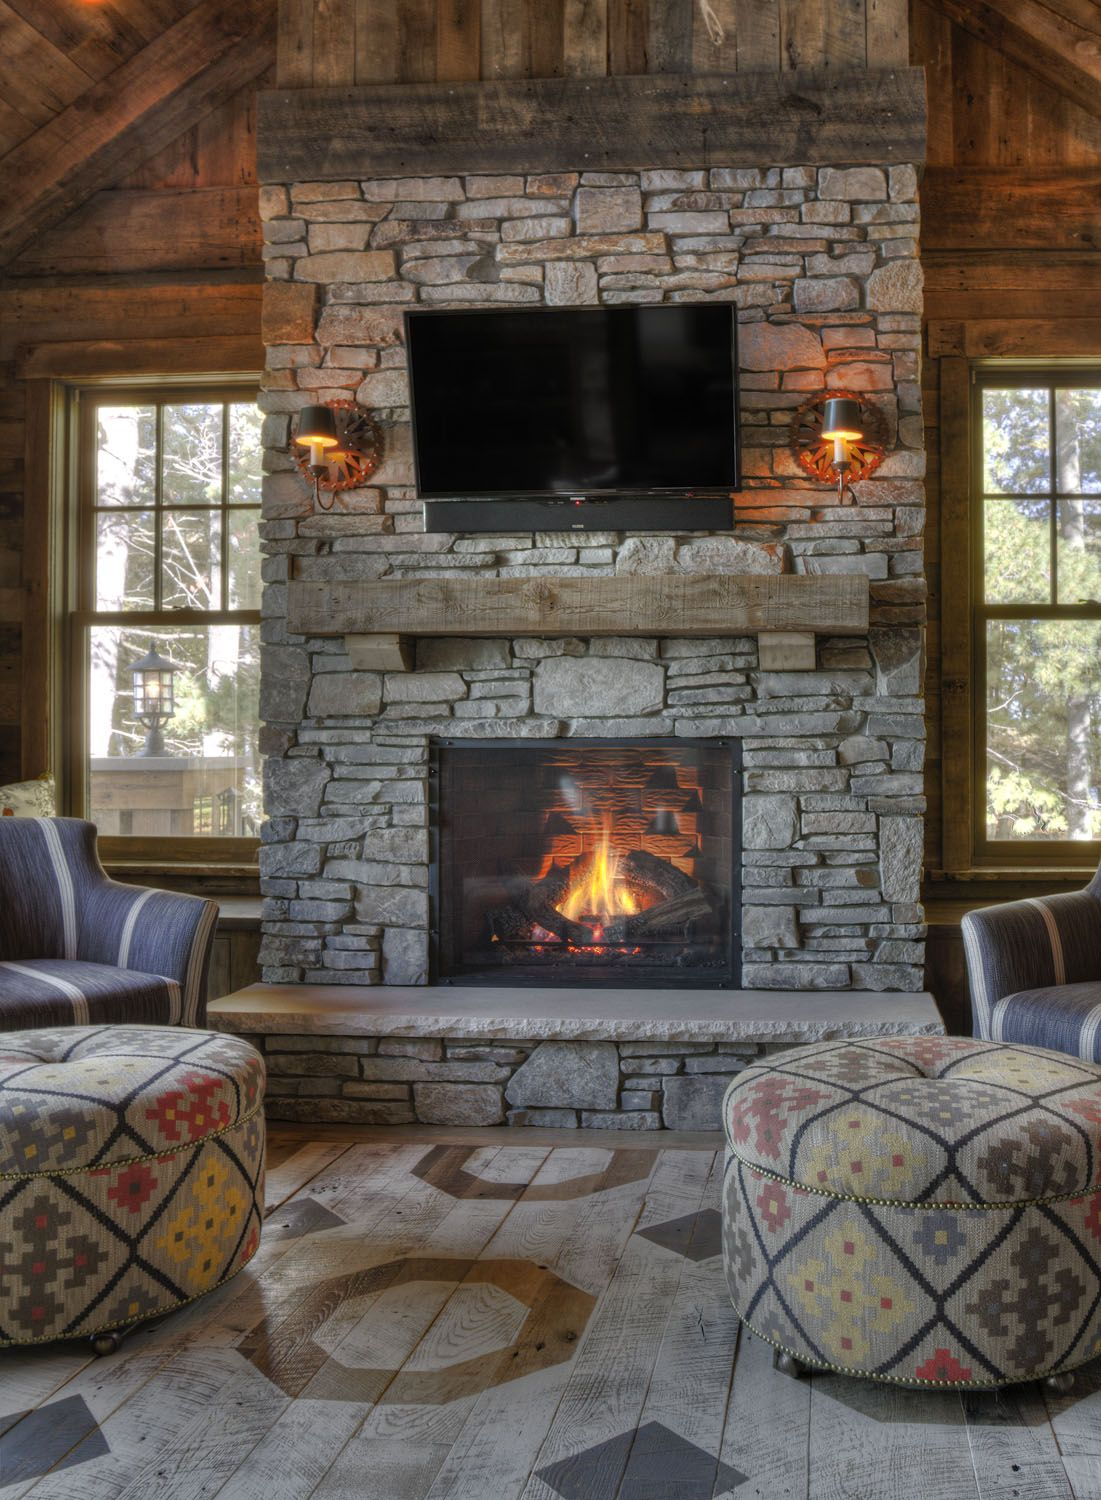 Visit the post for more timber frame pinterest rustic charm